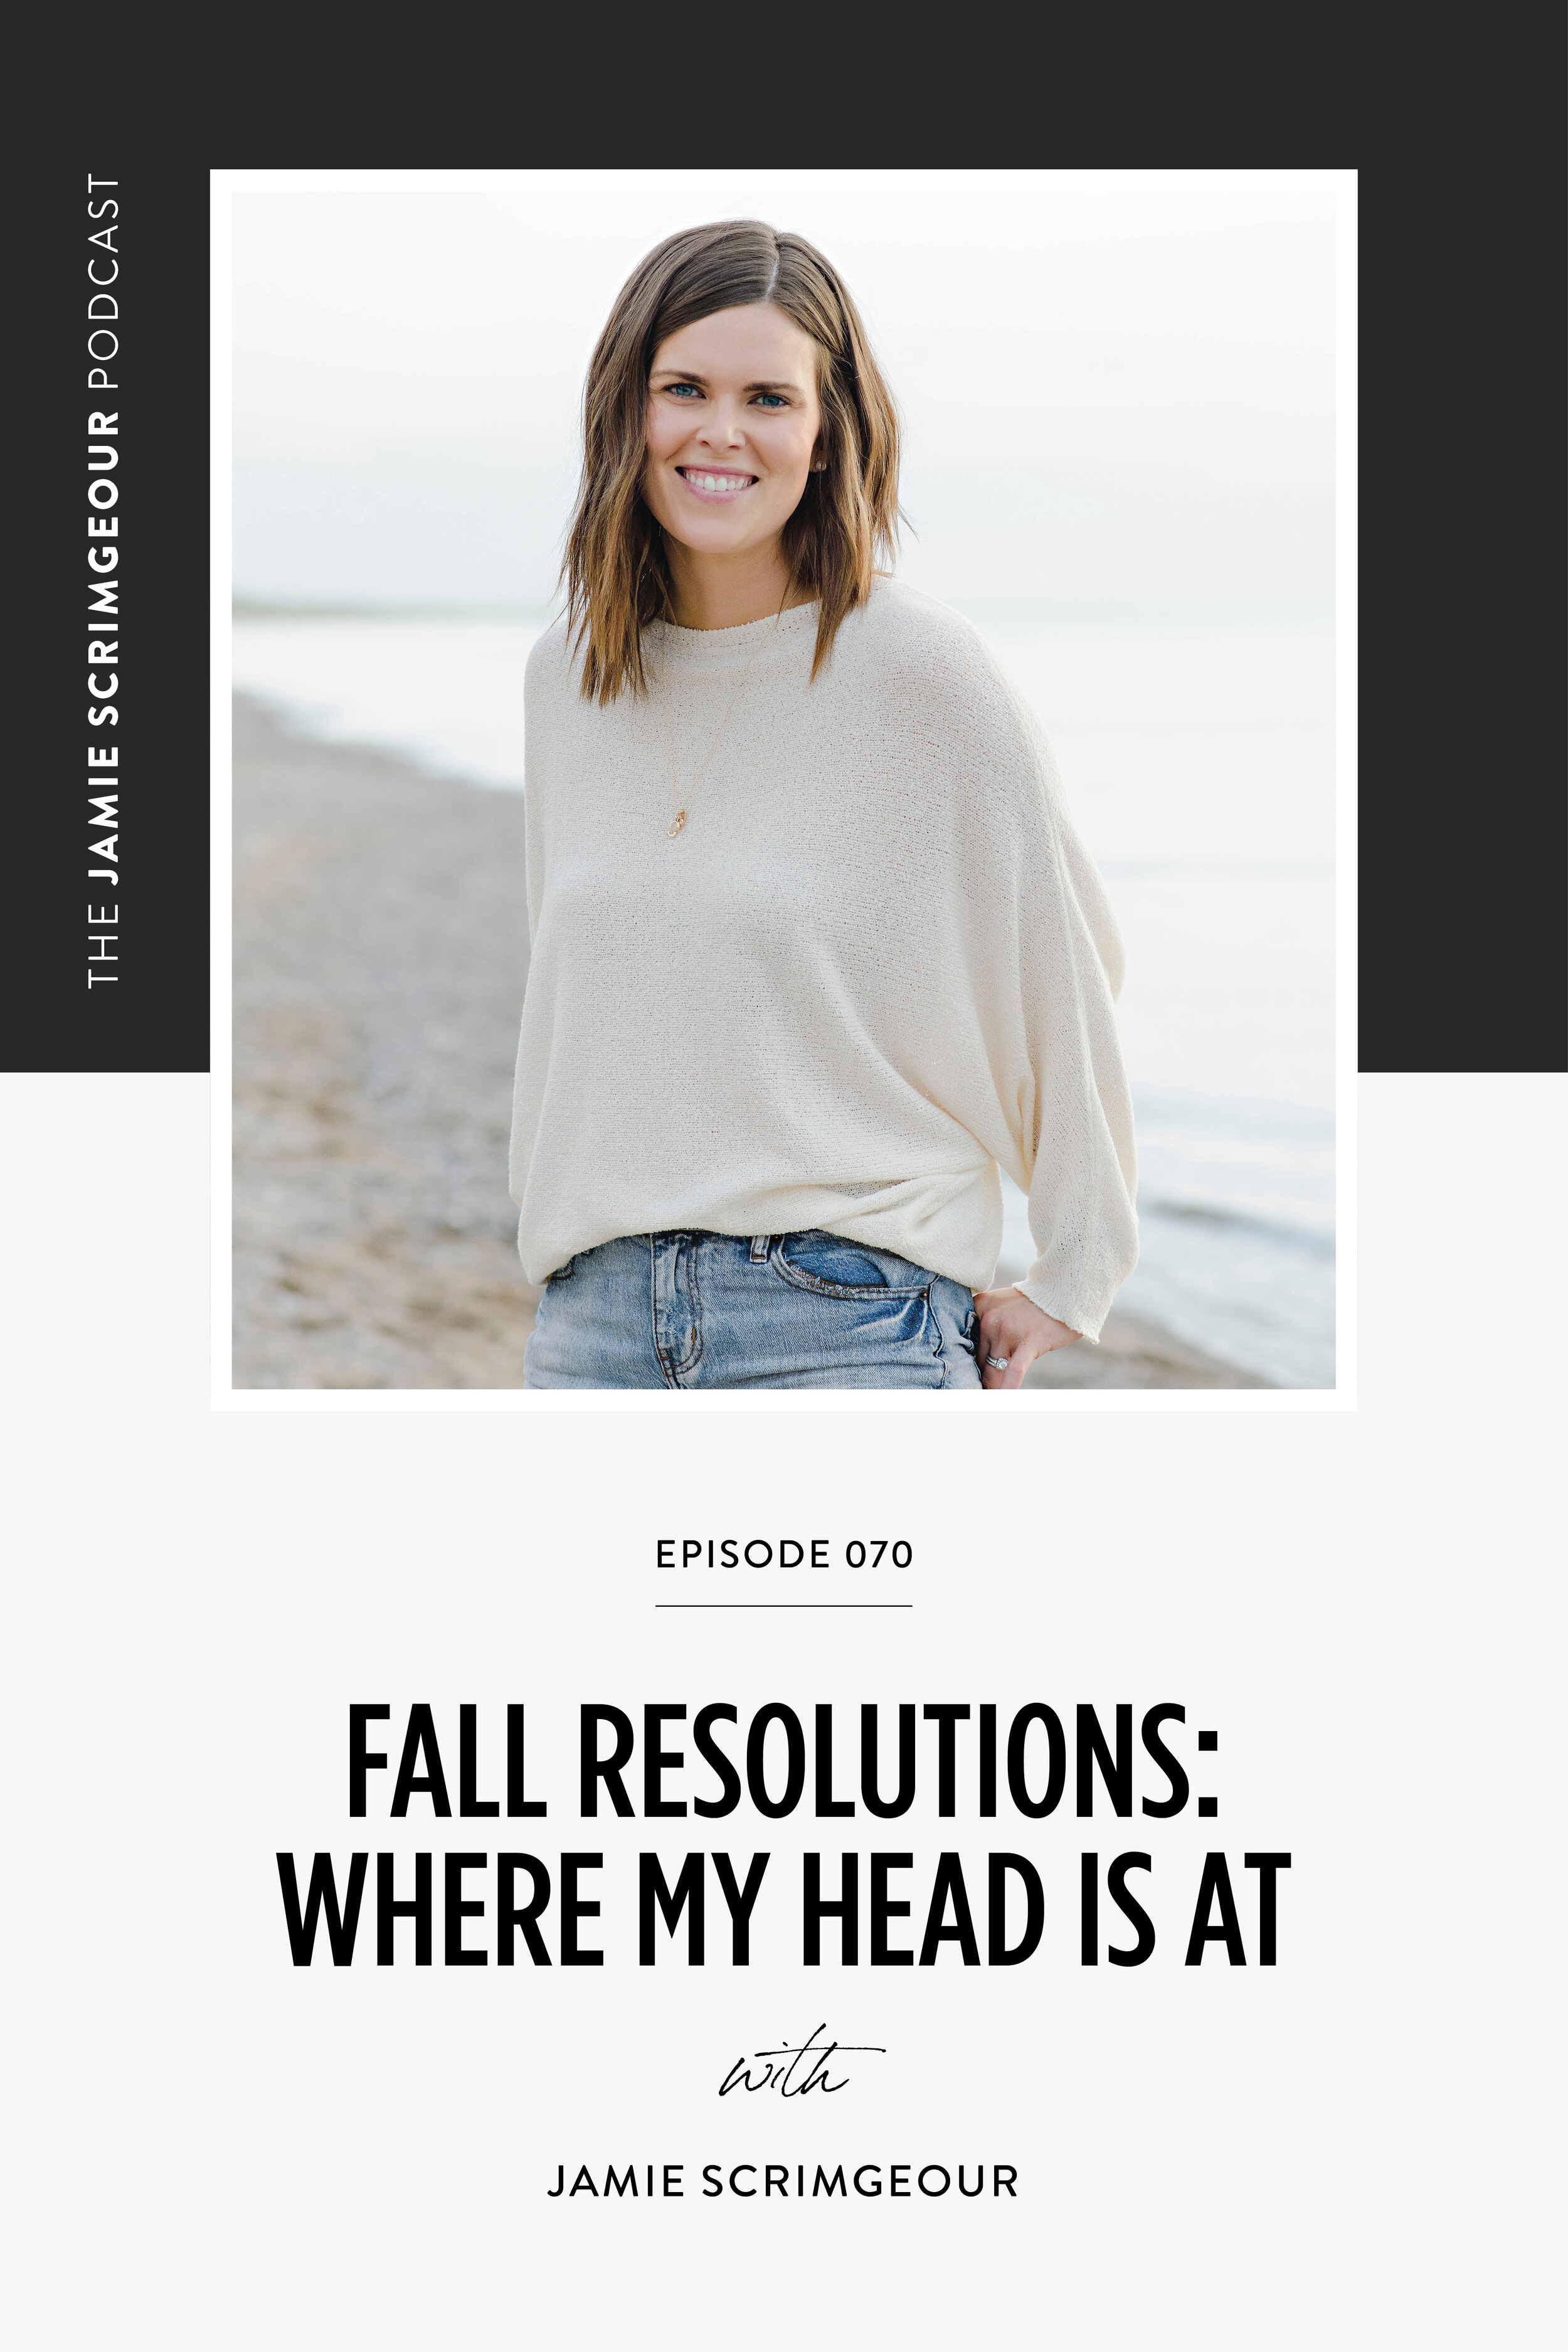 The Jamie Scrimgeour Podcast Episode 070 - Fall Resolutions